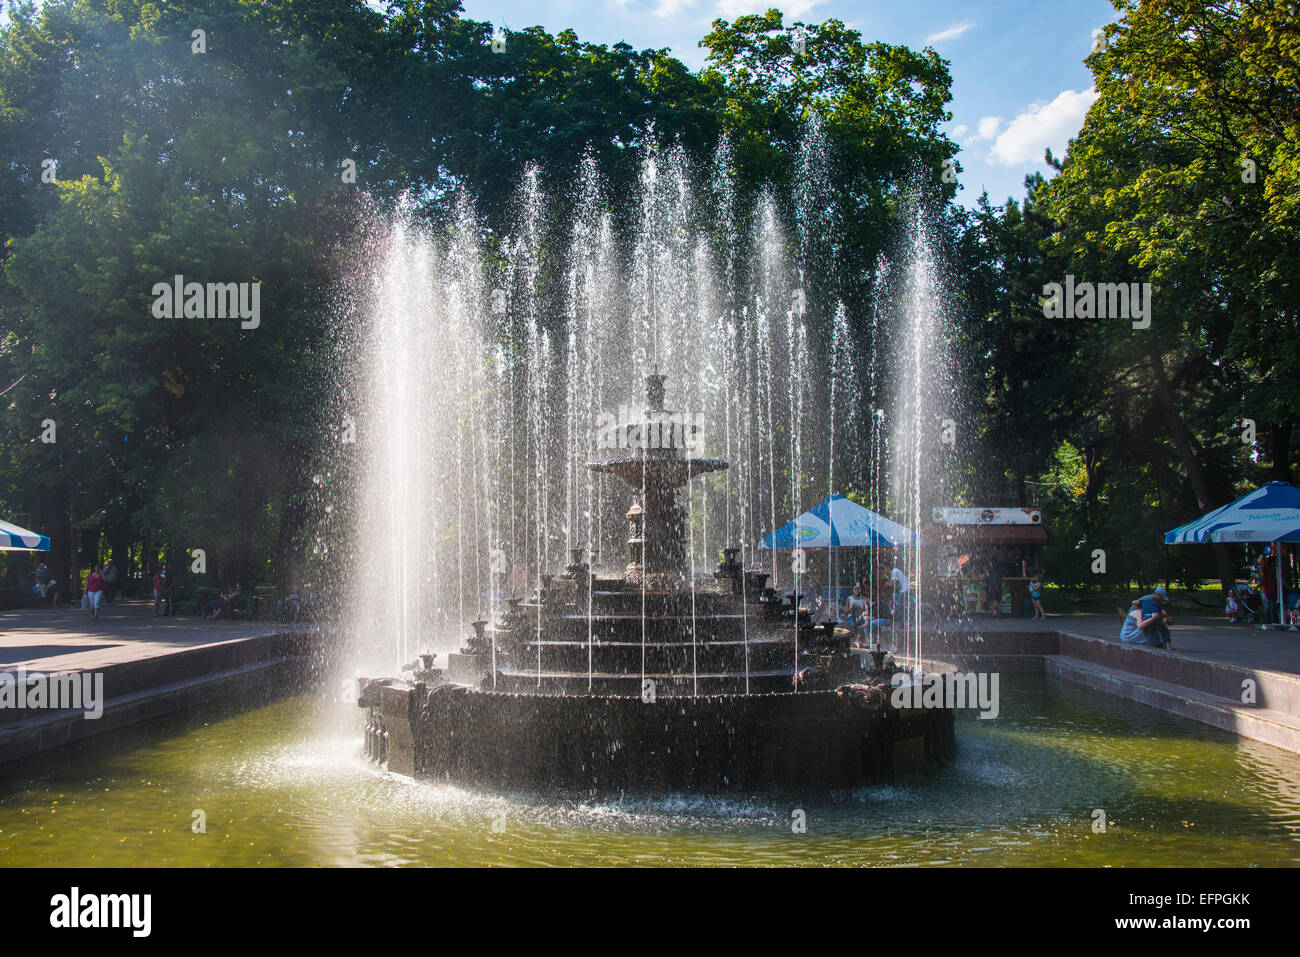 Water fountain in the Stefan cel Mare park in the center of Chisinau, capital of Moldova, Eastern Europe - Stock Image